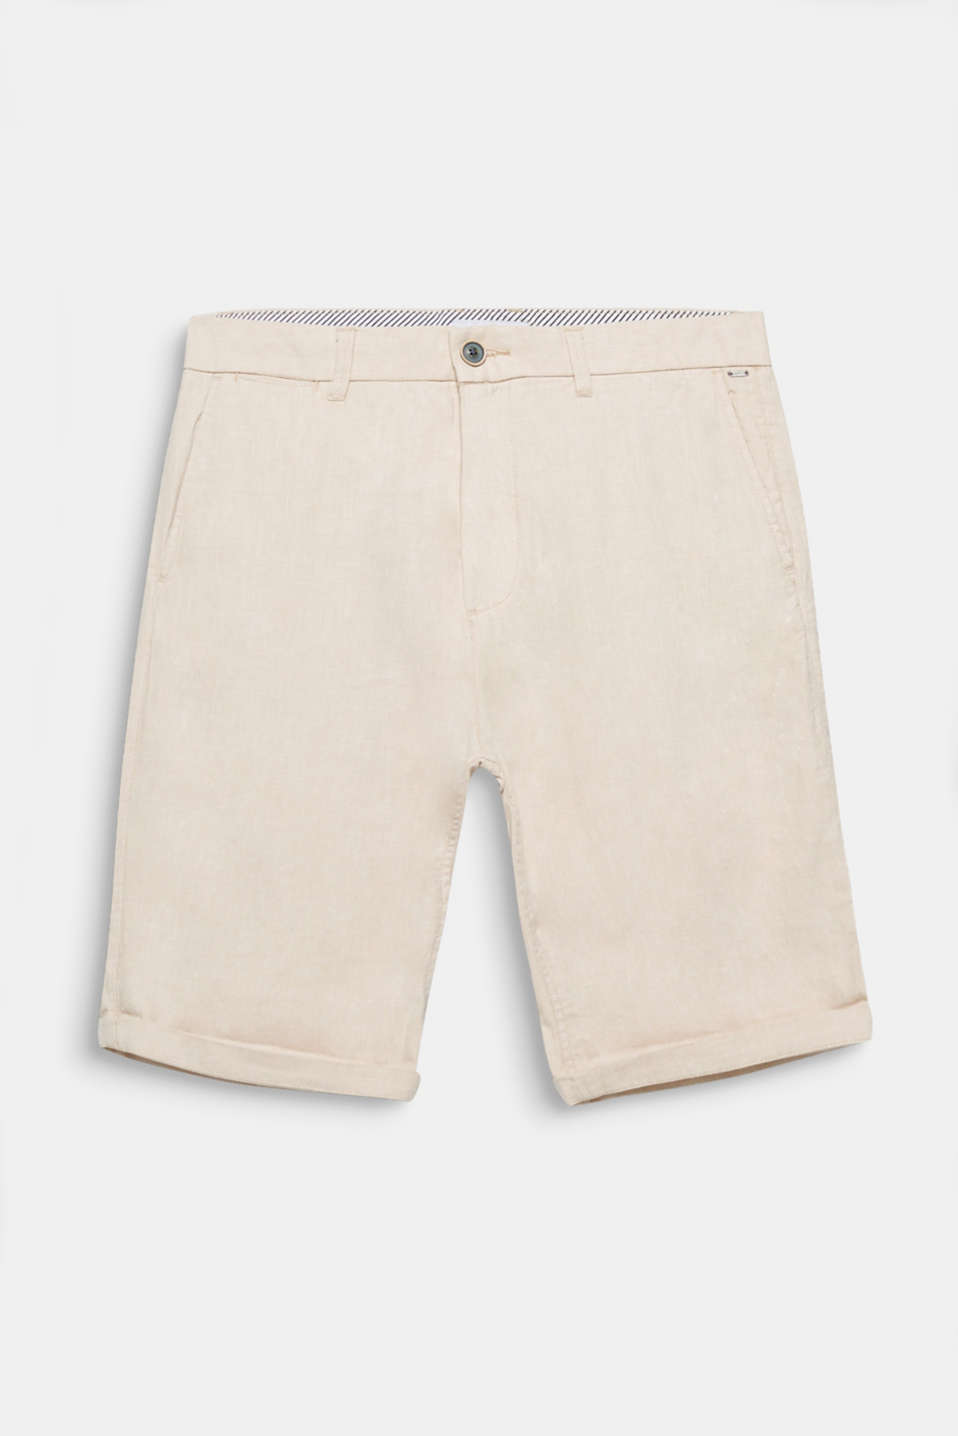 Cool shorts for warm days: always look laid-back out and about in these airily light shorts made of a cotton/linen blend.